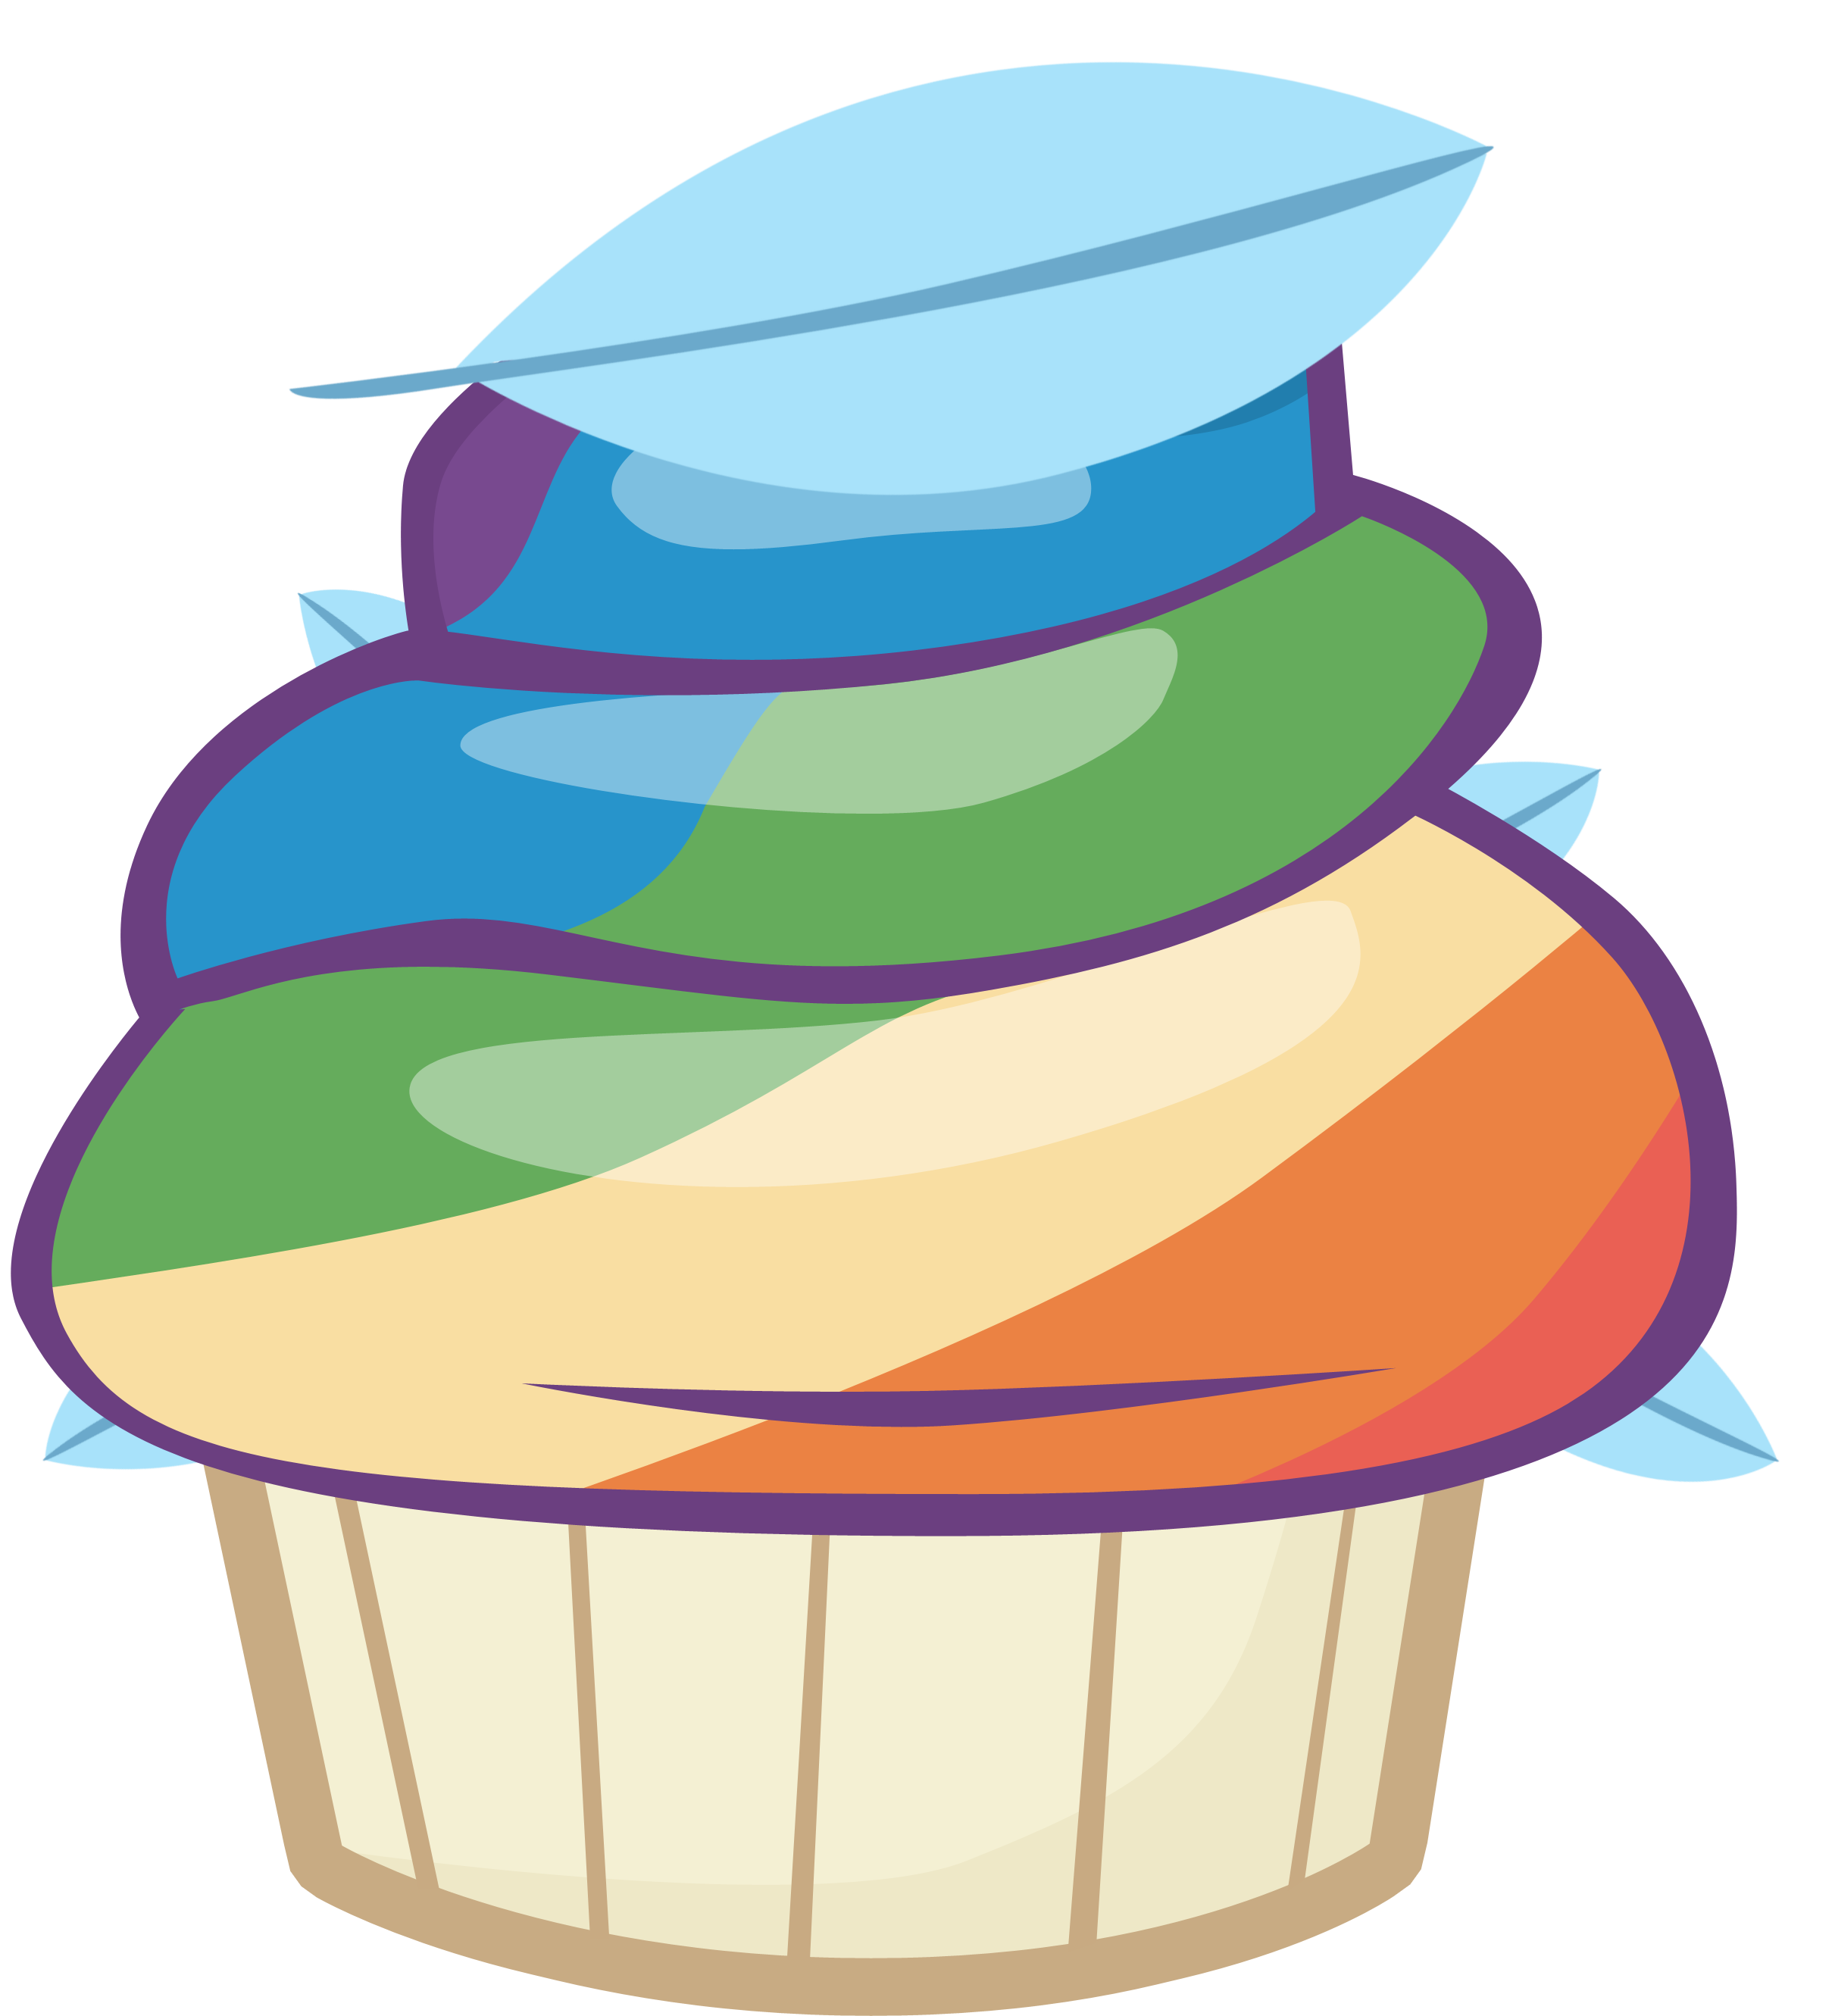 Cupcake Design Png : Cupcake Cartoon Icon Png - ClipArt Best